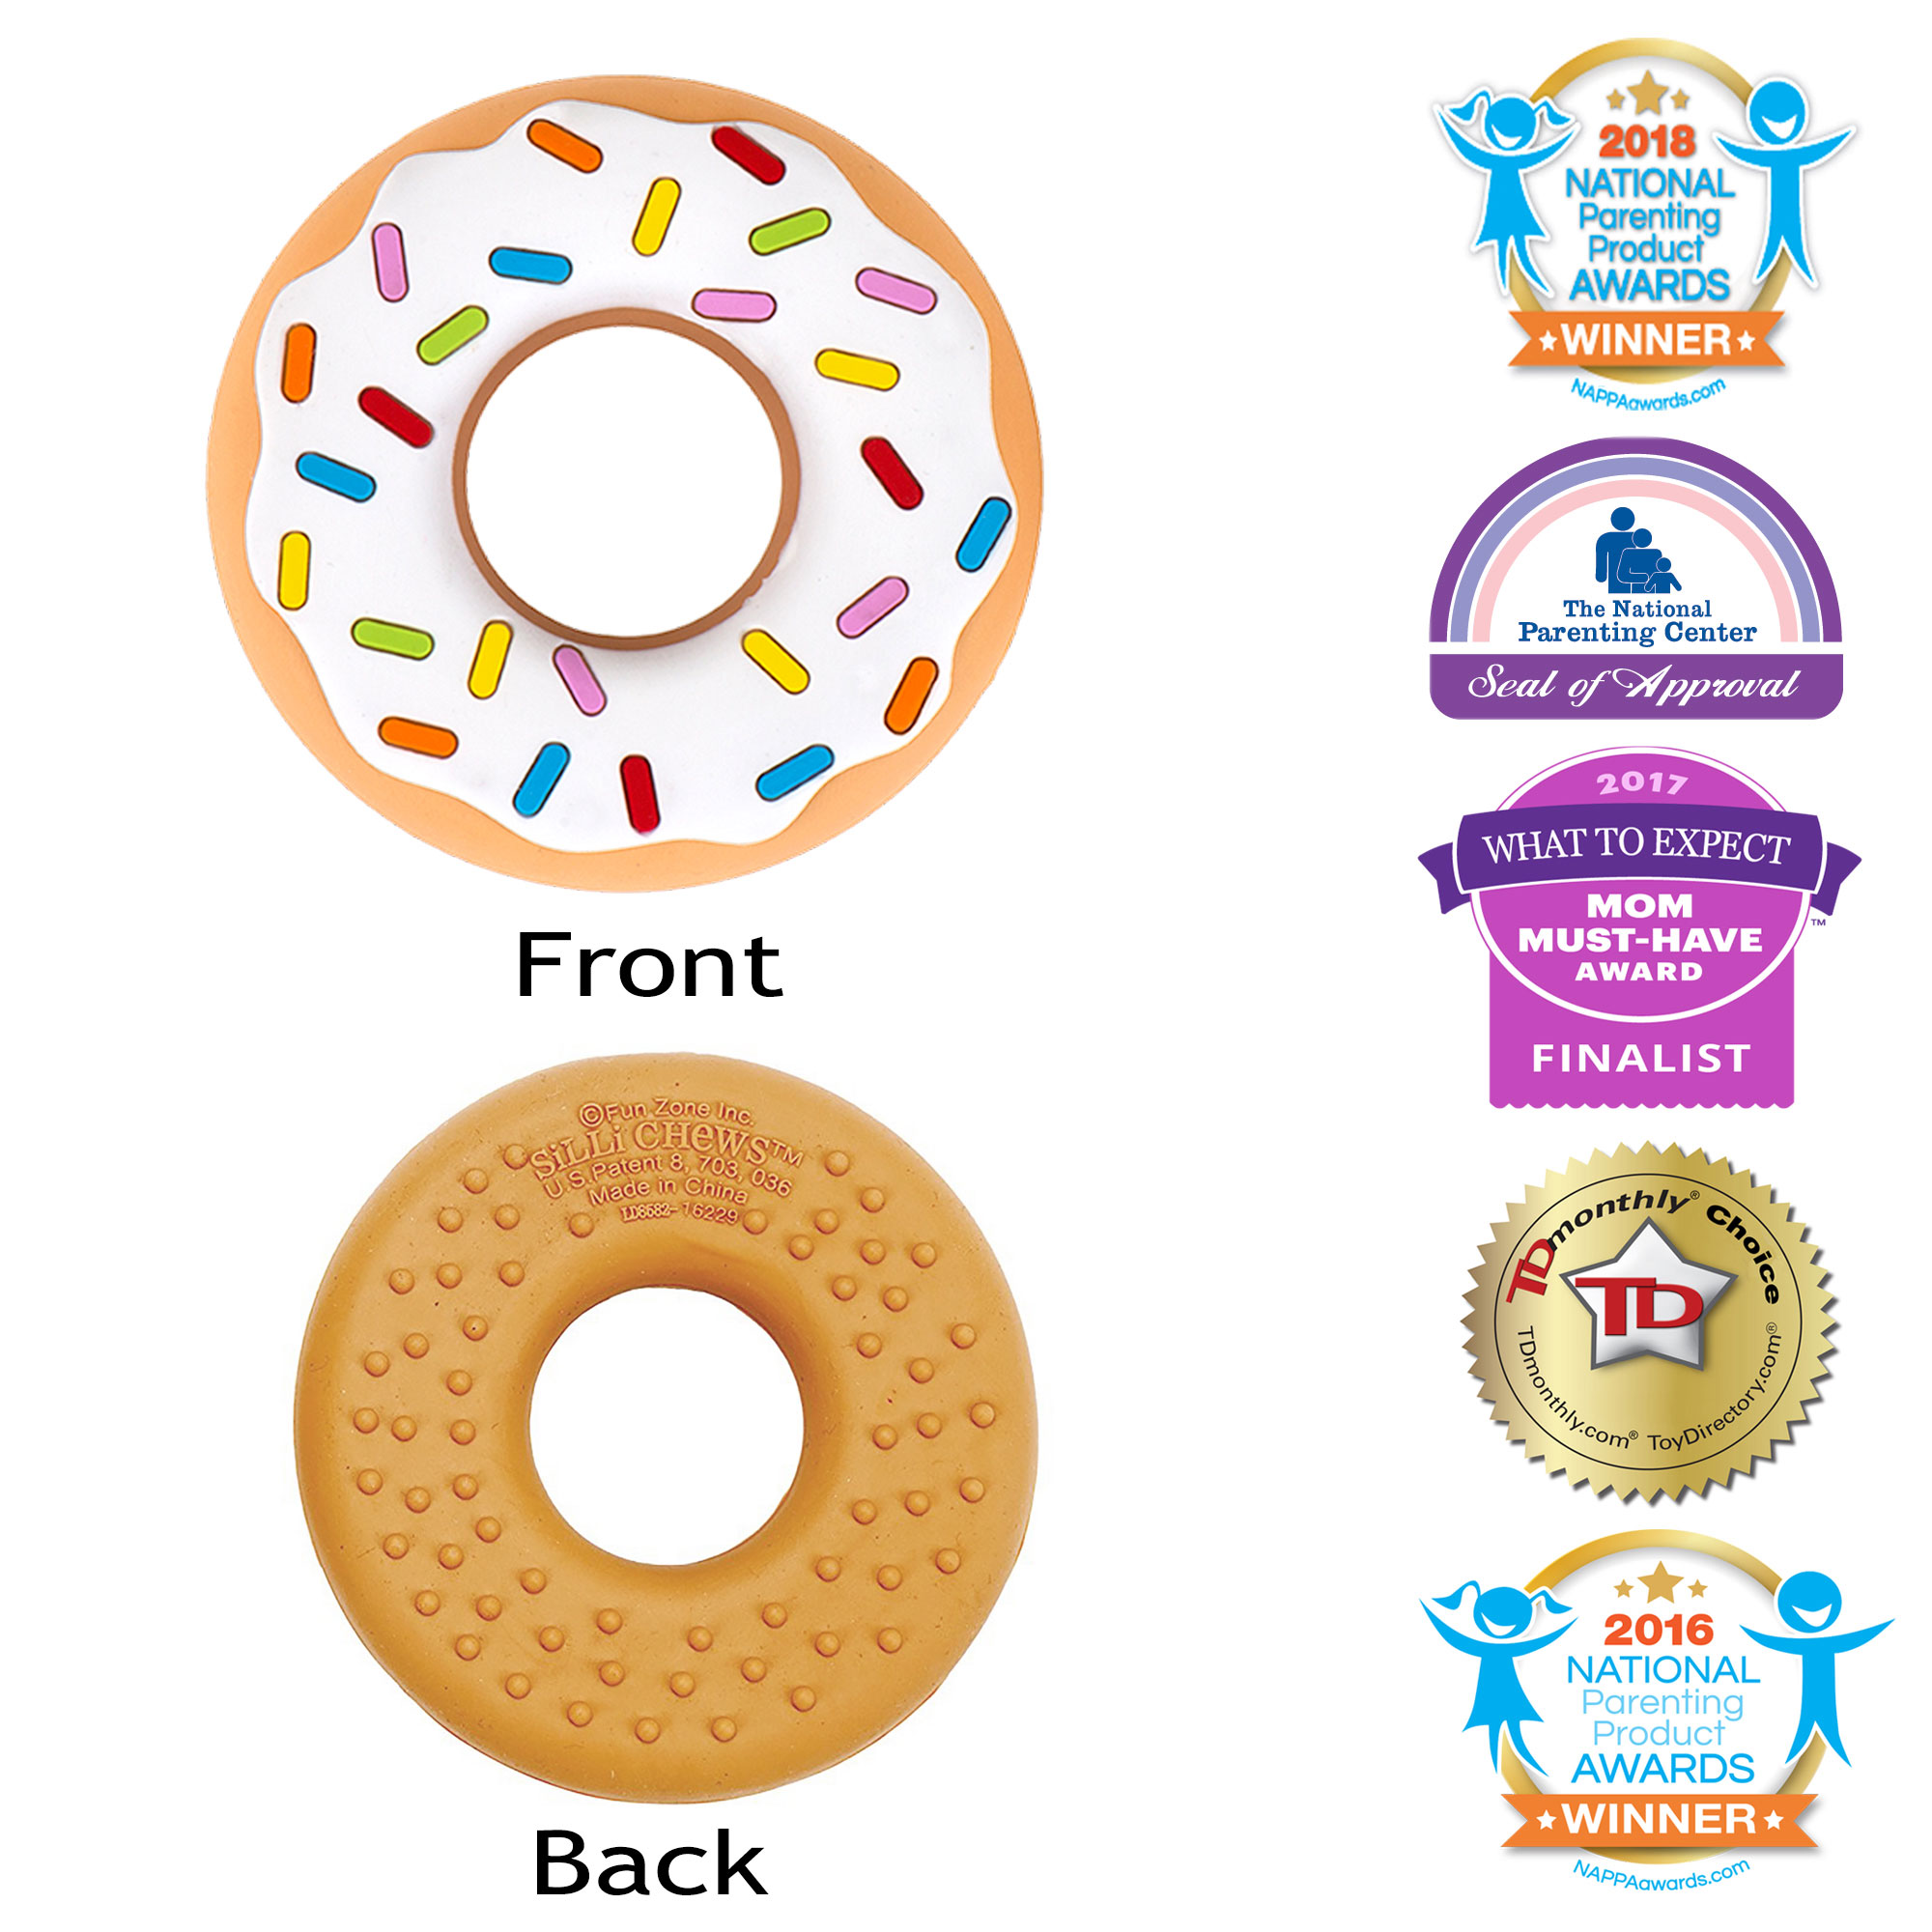 SilliChews Vanilla Donut (Doughnut) Baby Teether Popular Teething Toy Food Grade Silicone Best Teething Toy Favorite ToddlerChew Toy Soother use Cold or Frozen Cute Holiday Gift Stocking Stuffer